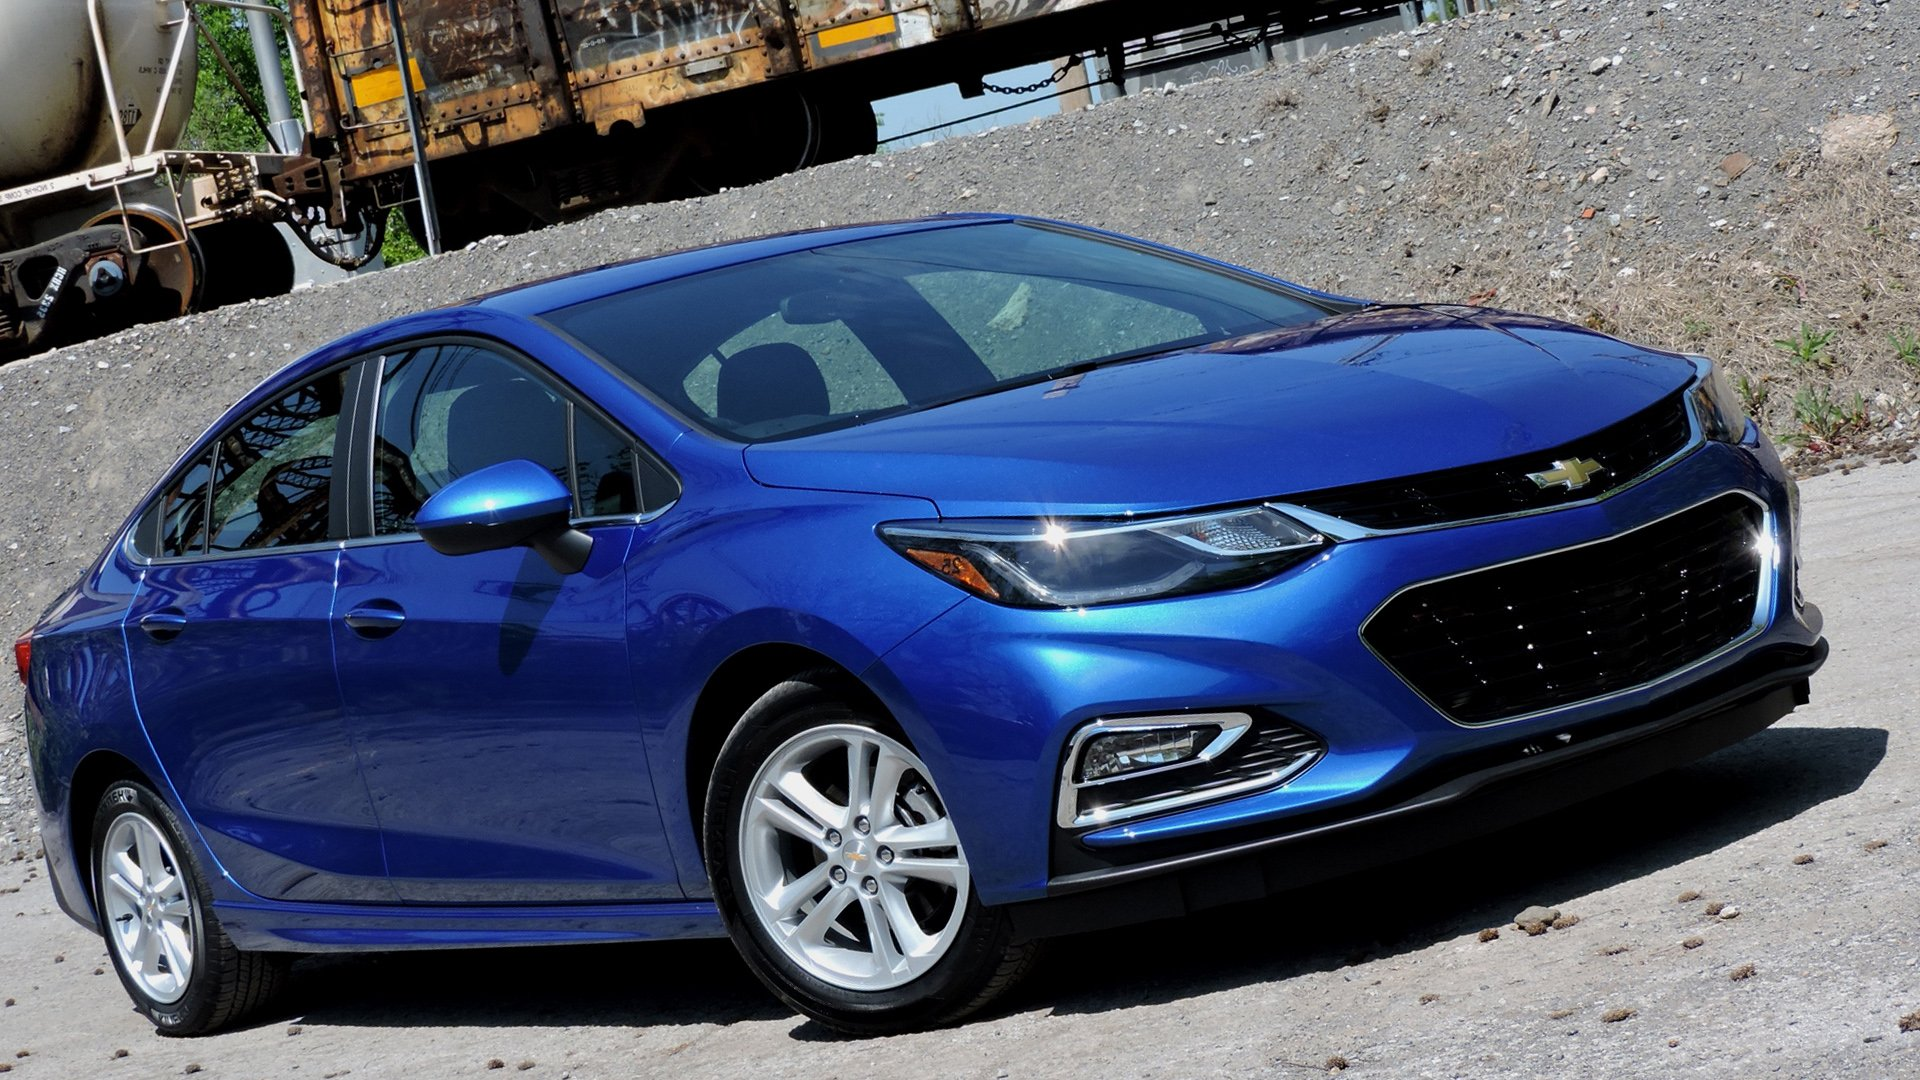 New 2019 Chevrolet Cruze Release Date